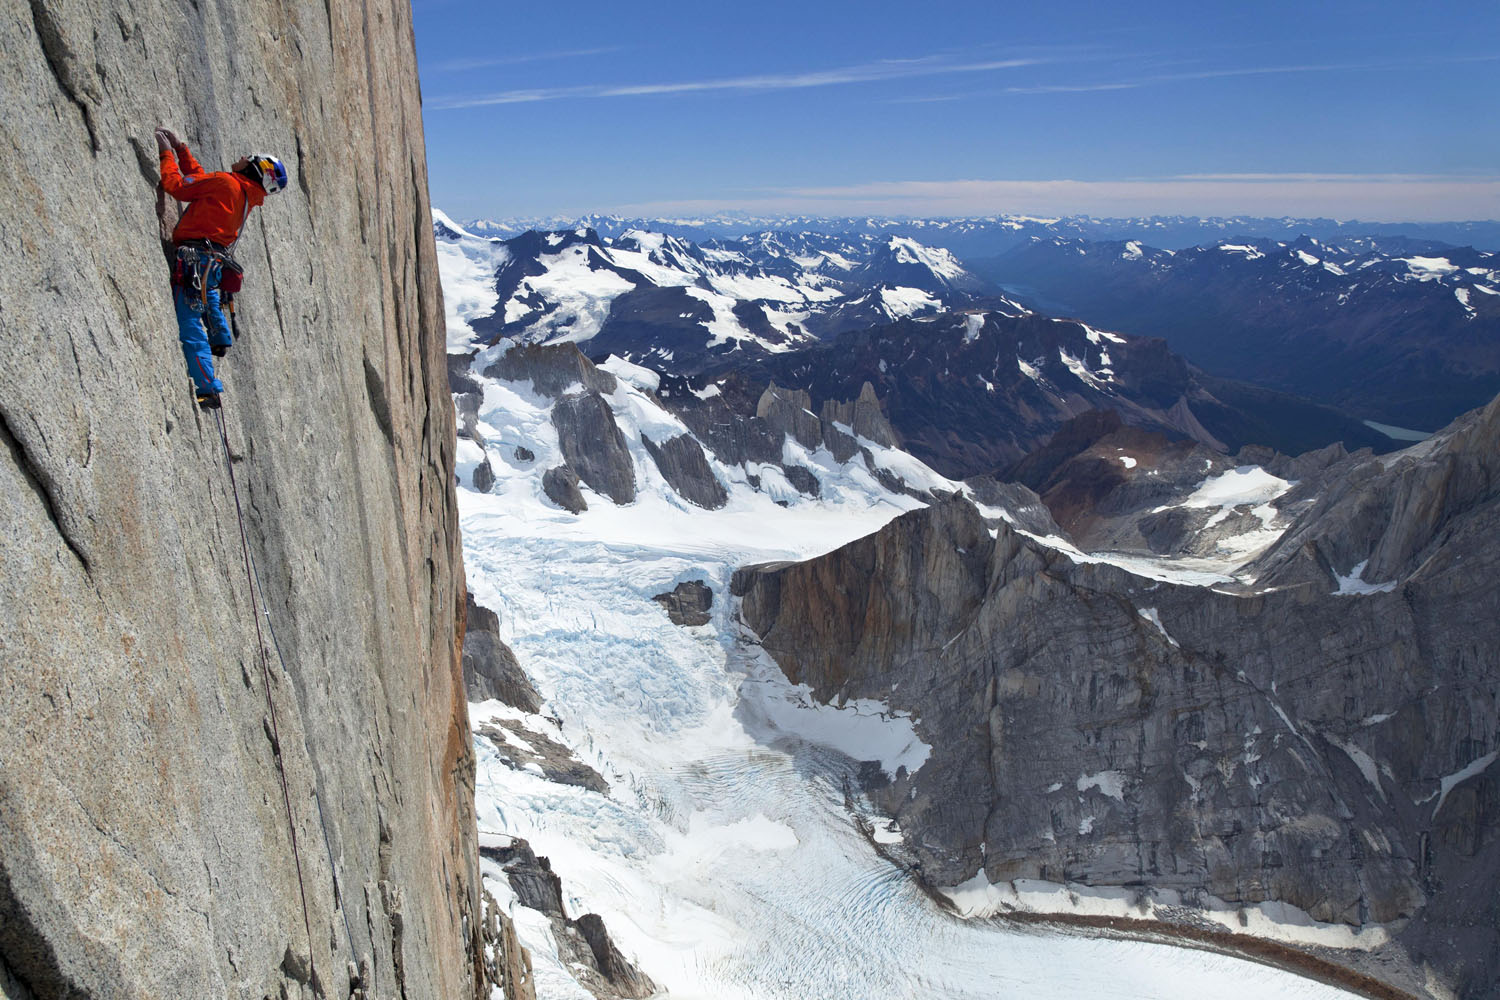 David Lama free climbing the headwall of Cerro Torre during the first free ascent of Cerro Torre's Southeast ridge during the third expedition in Patagonia, Argentina.